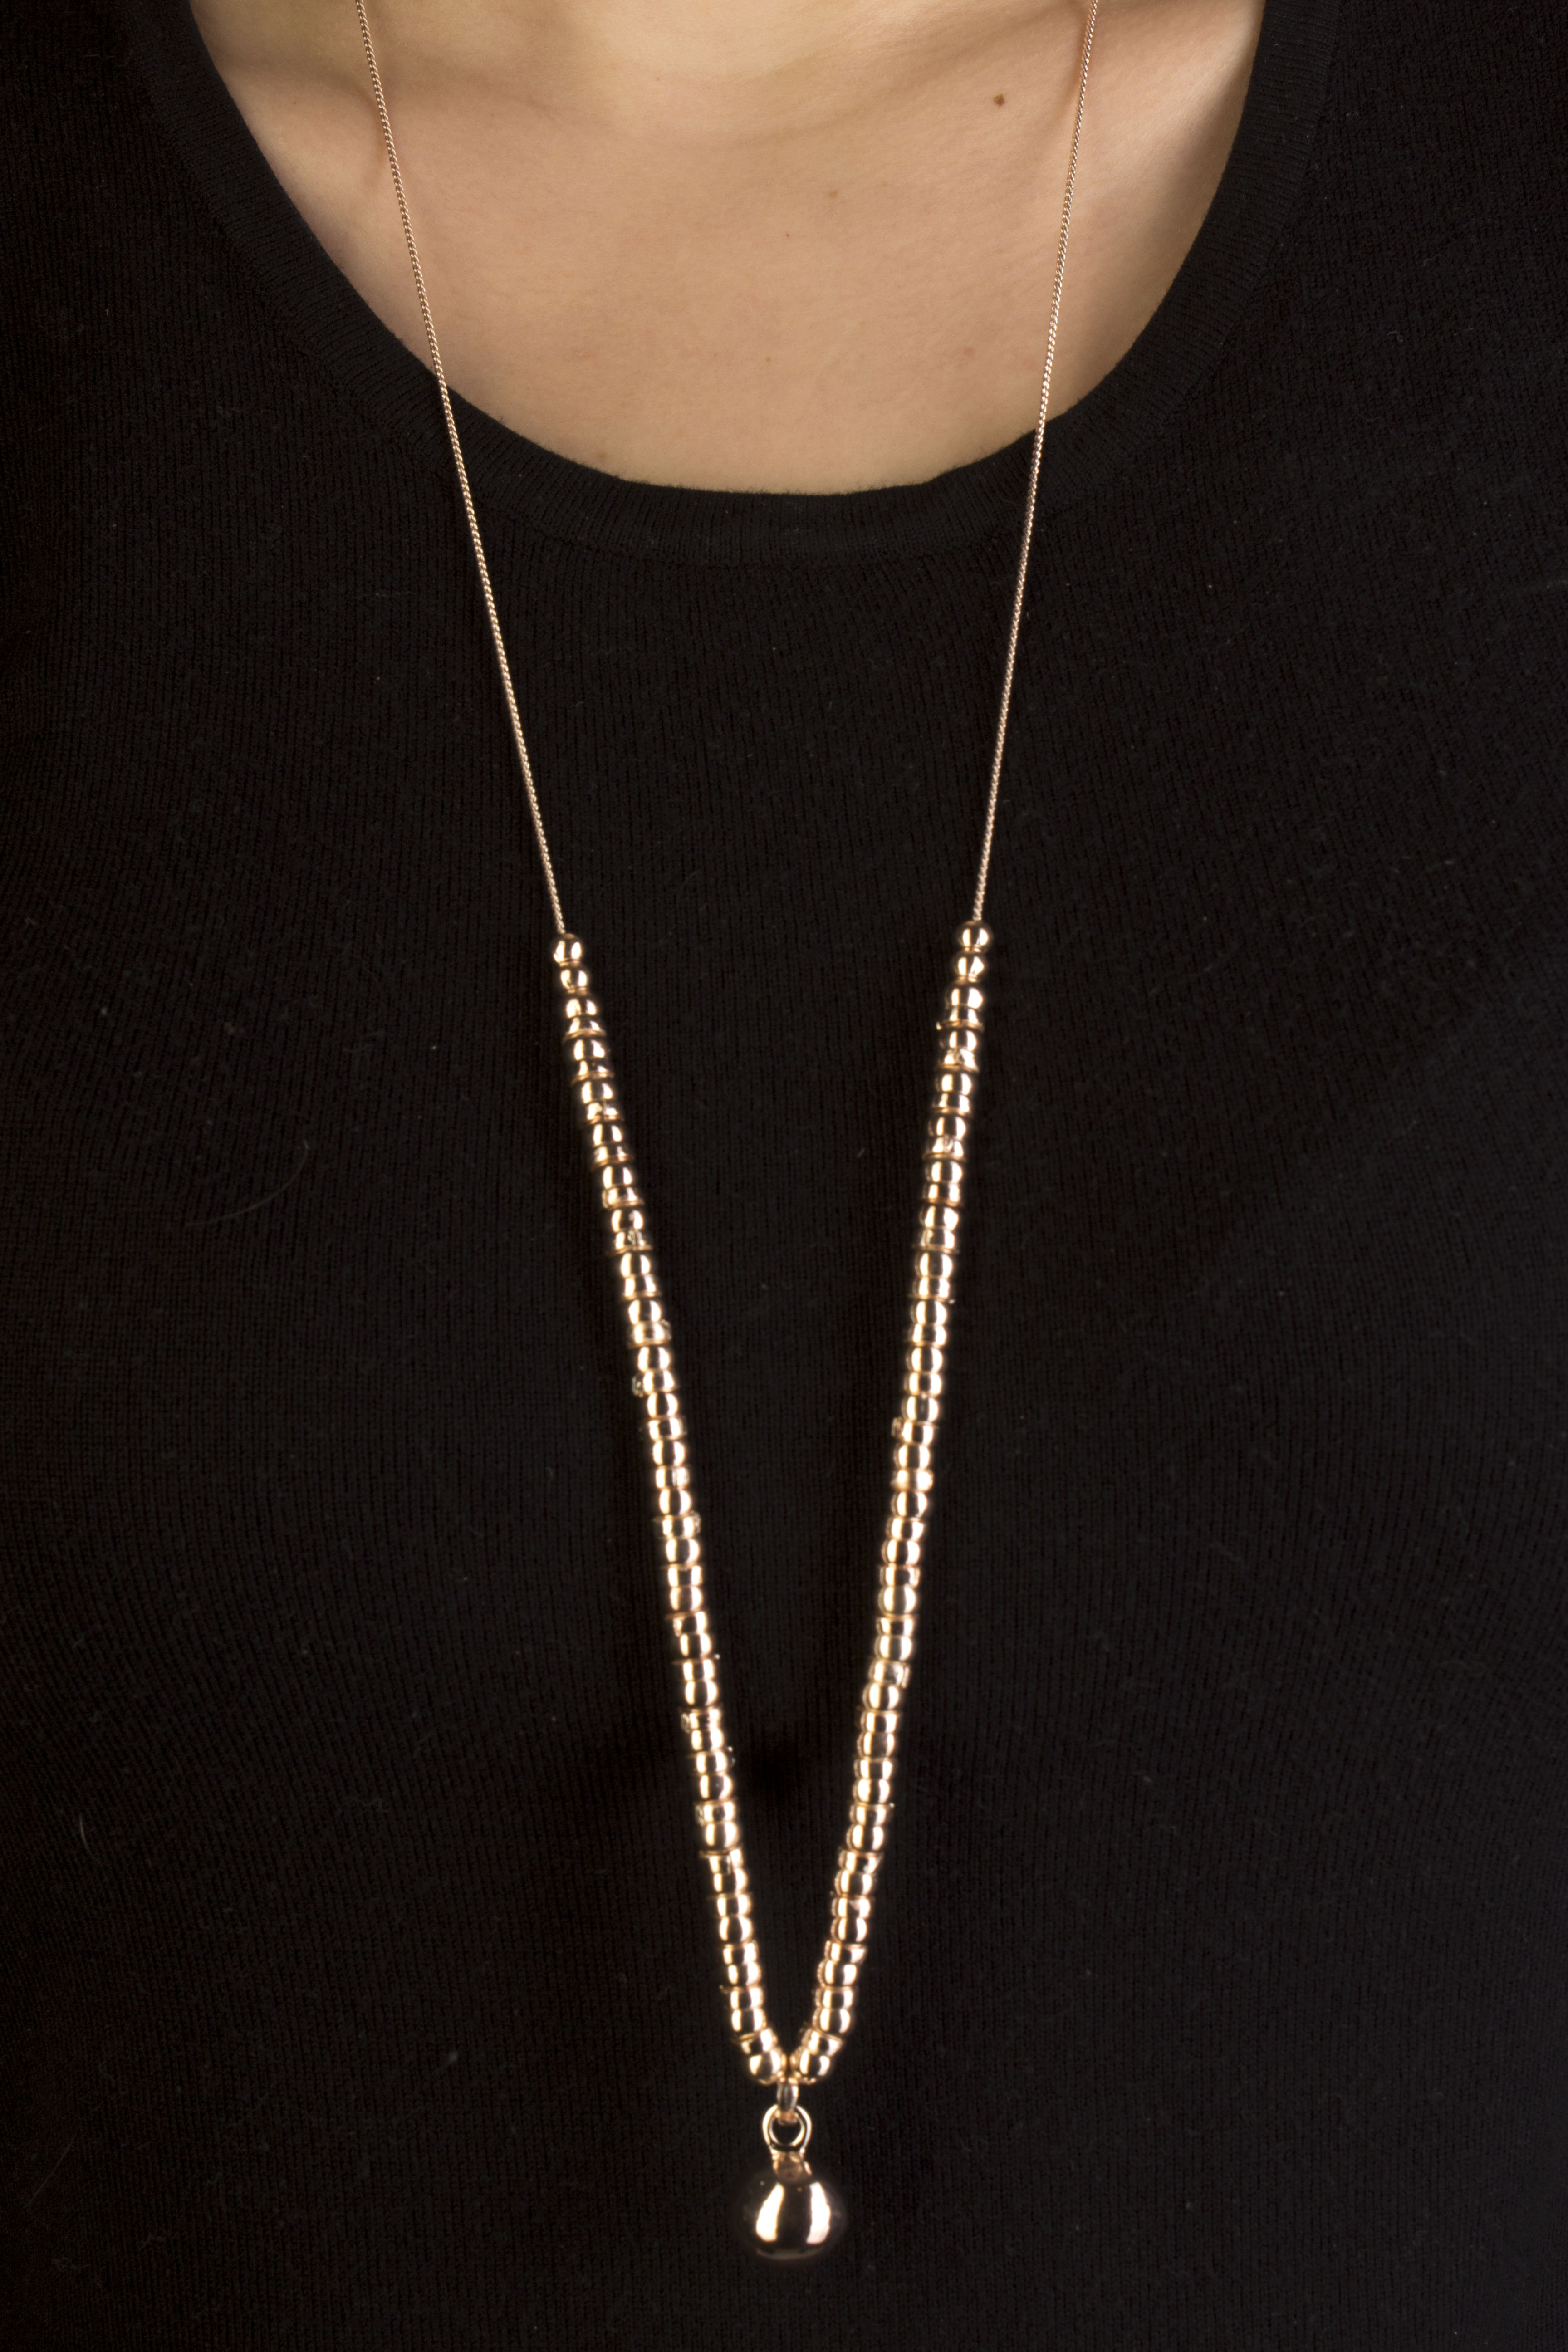 Gold And Diamond Necklace Uk